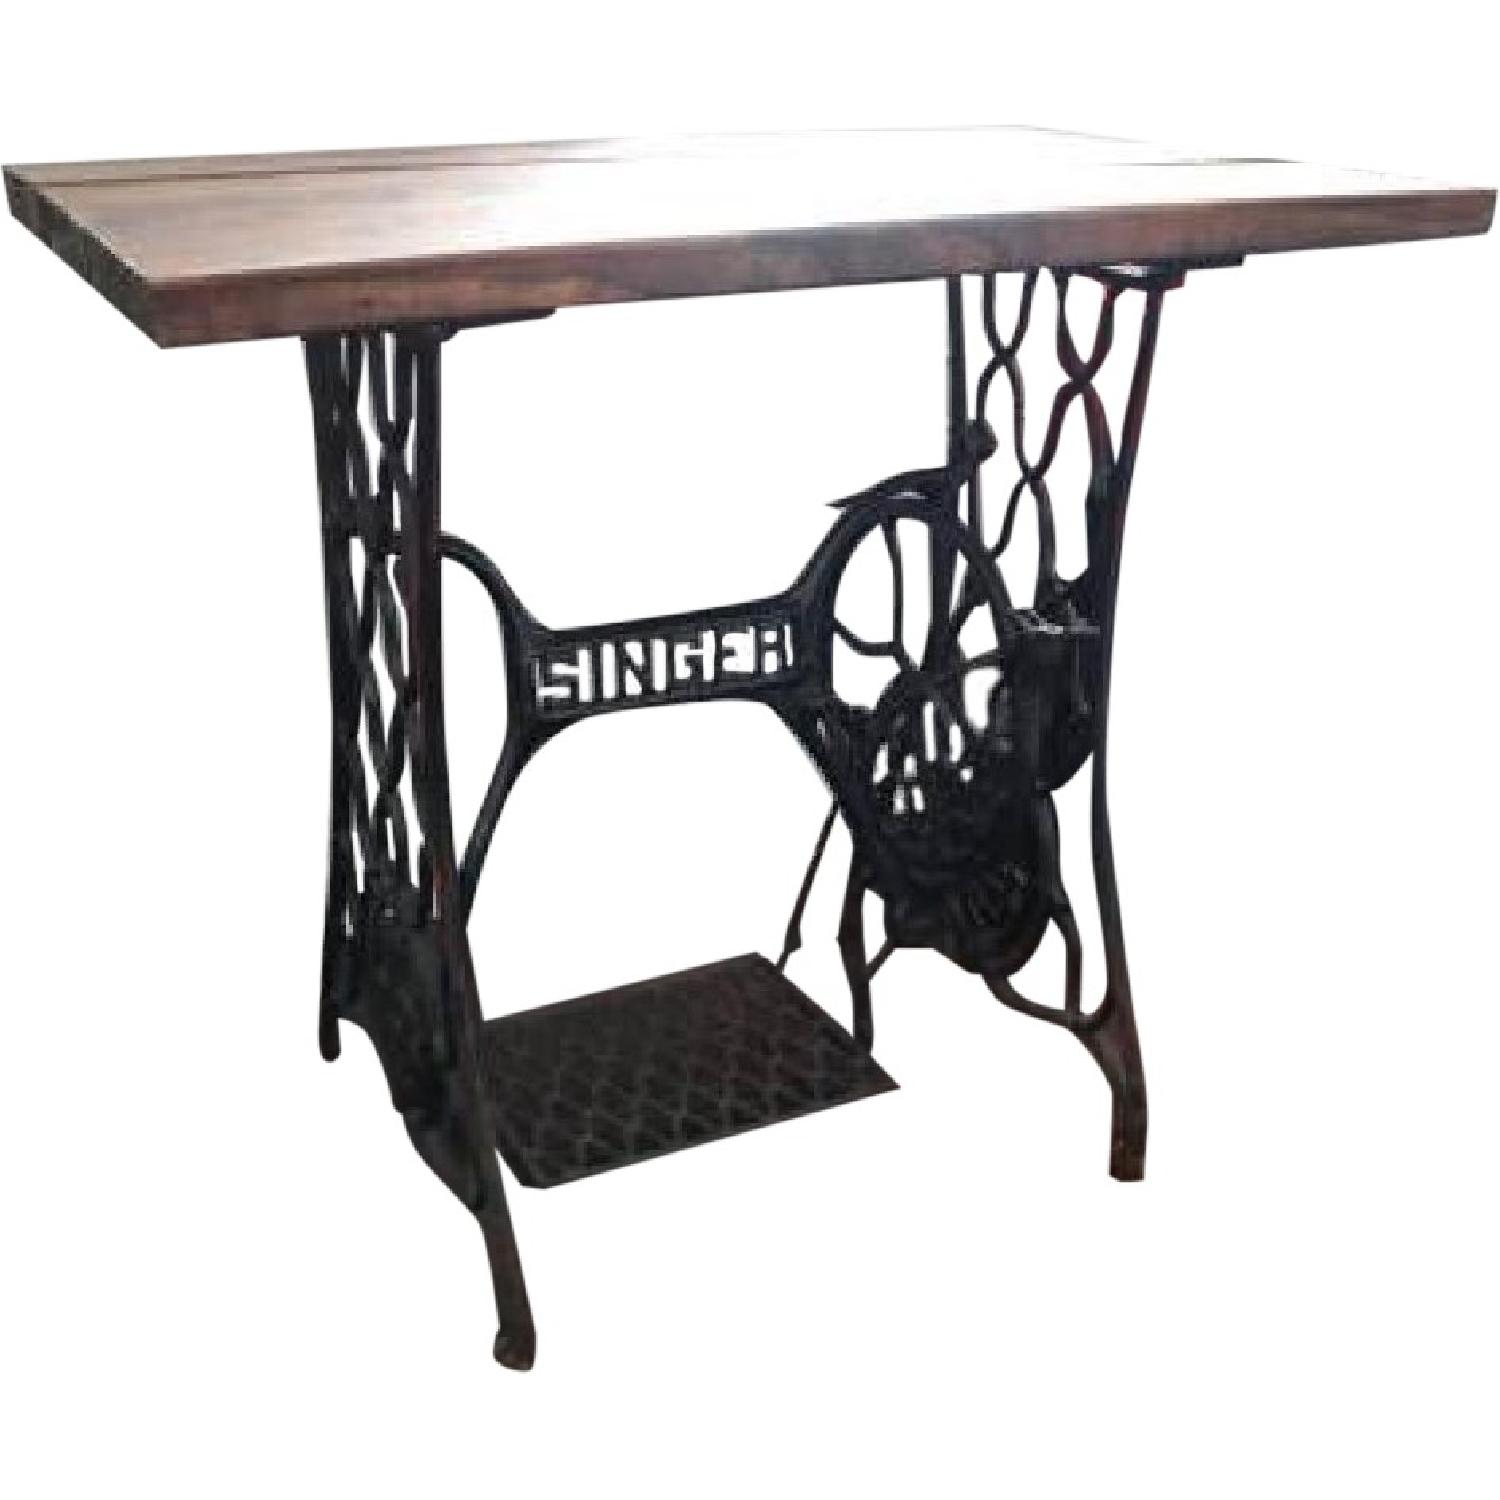 Antique Singer Sewing Machine Table/Desk